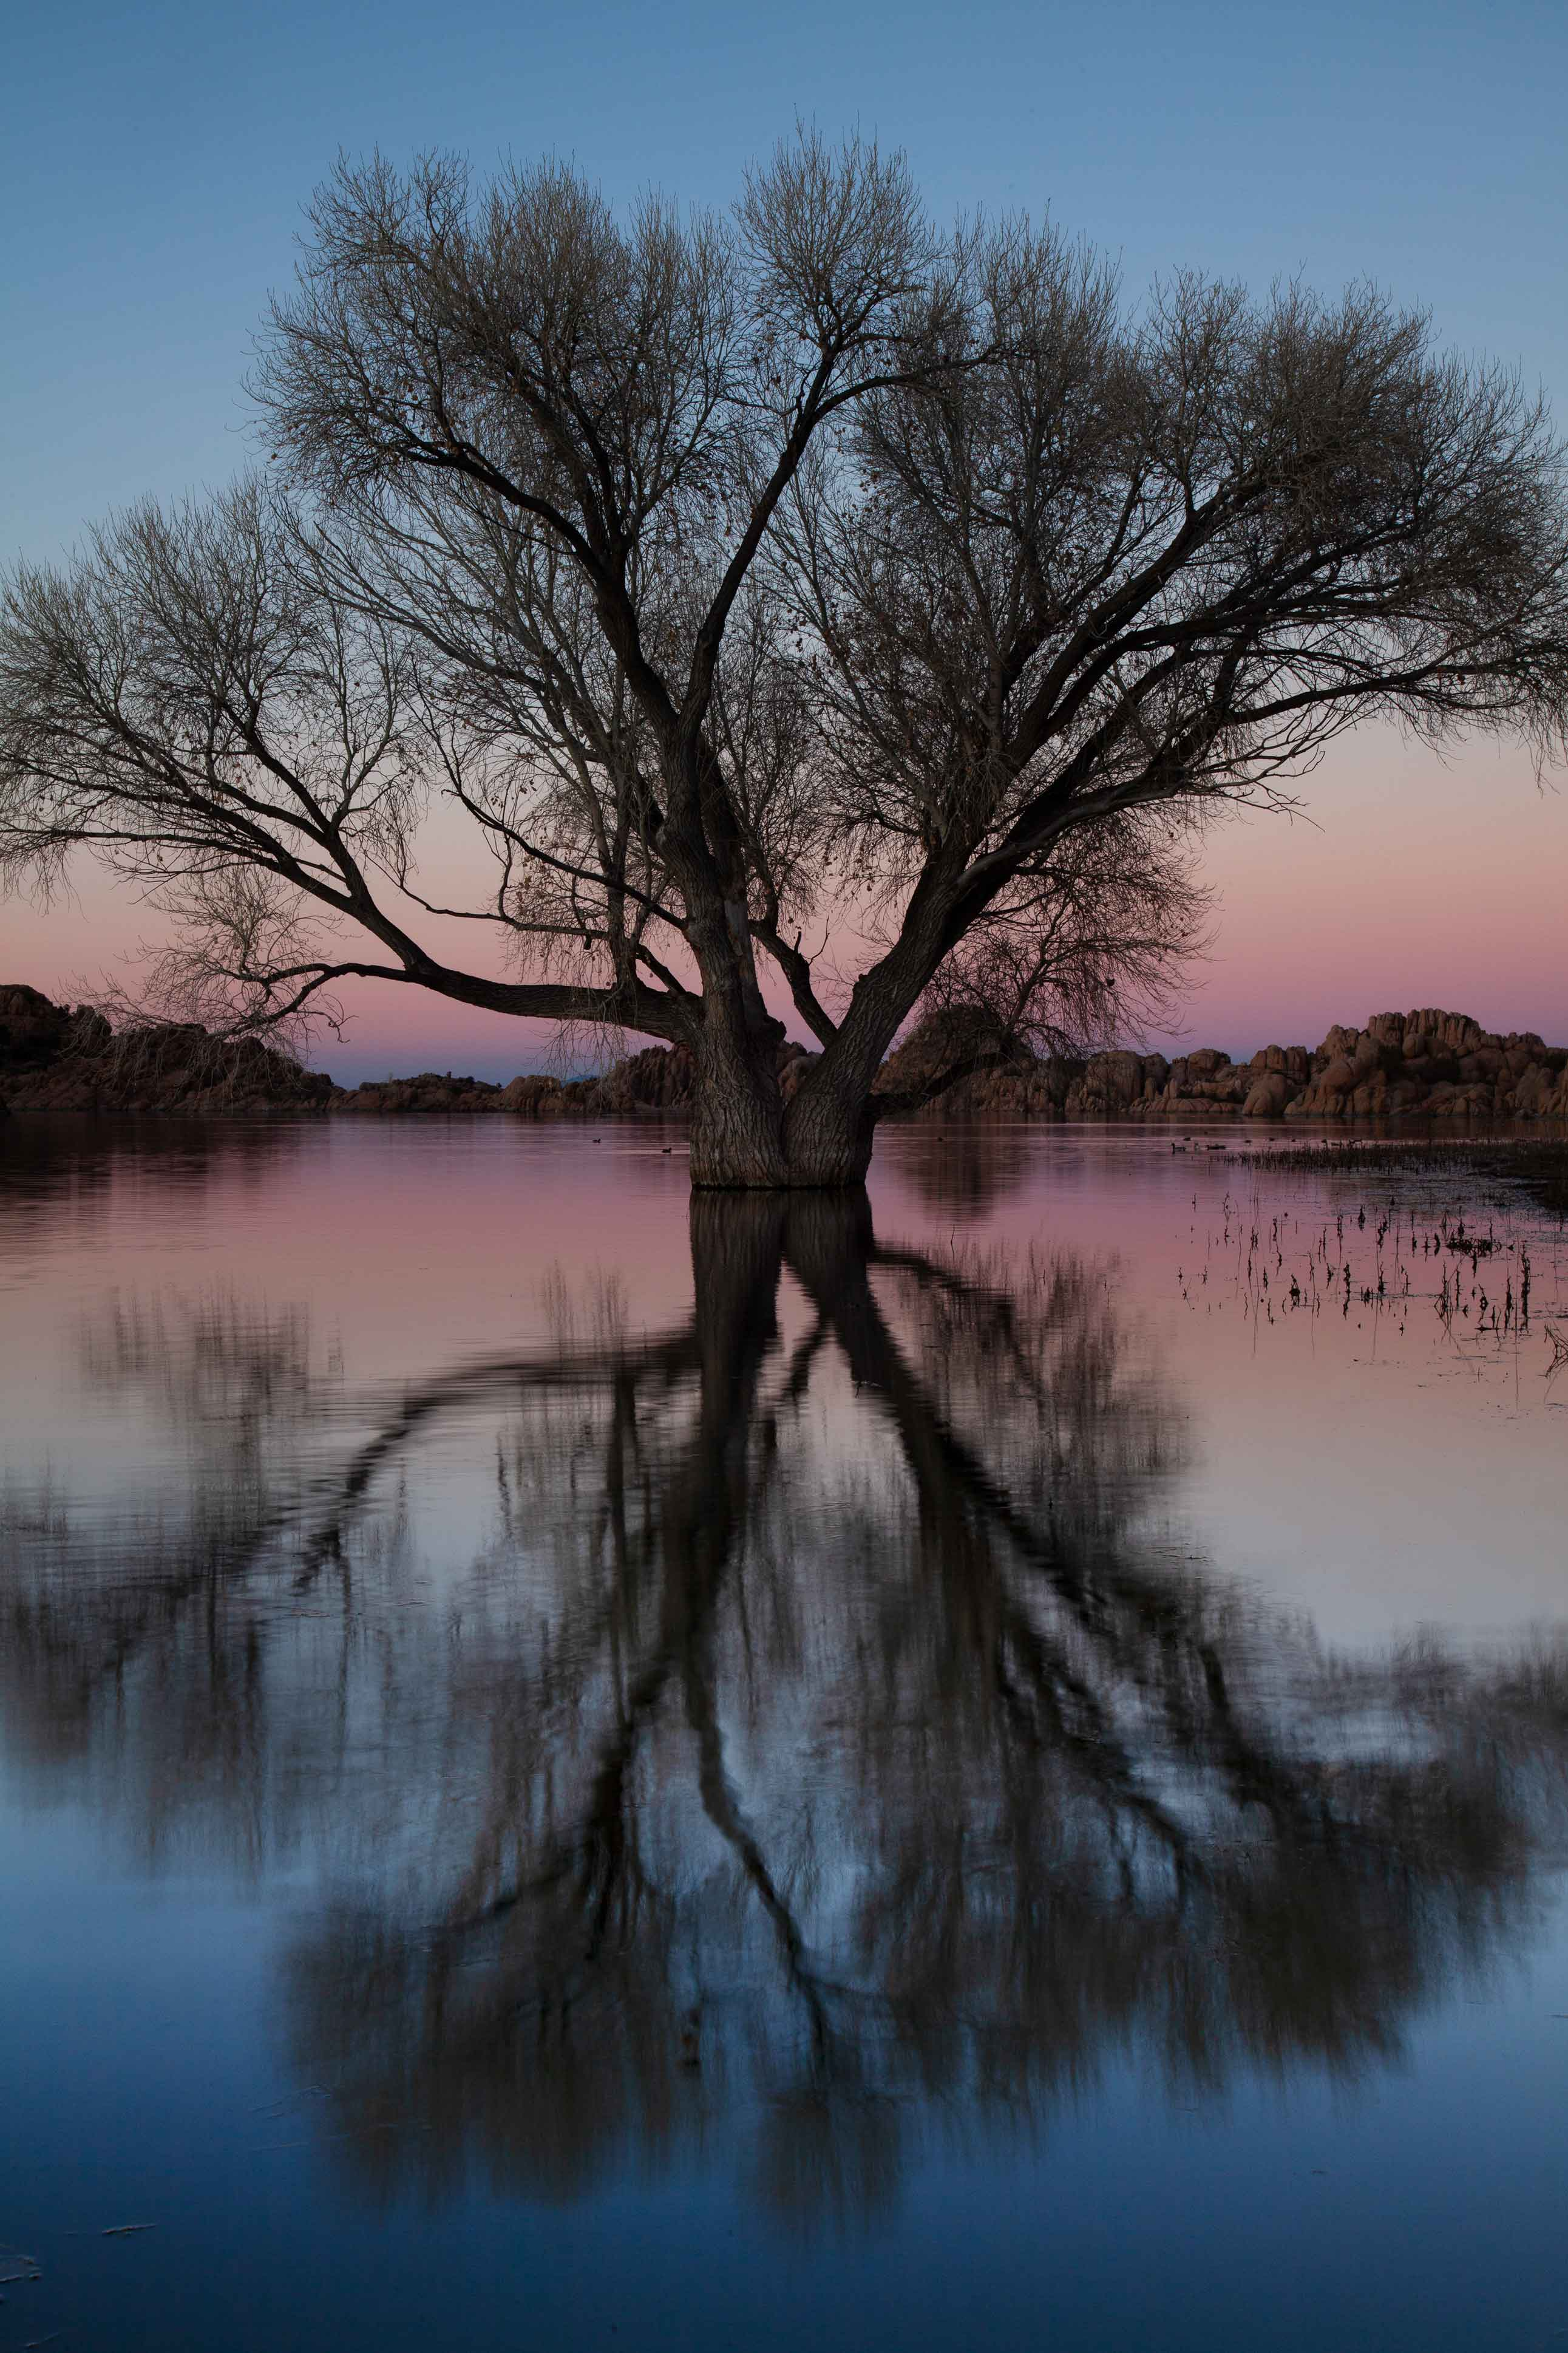 Tree at Watson Lake on the edge of Prescott, Arizona